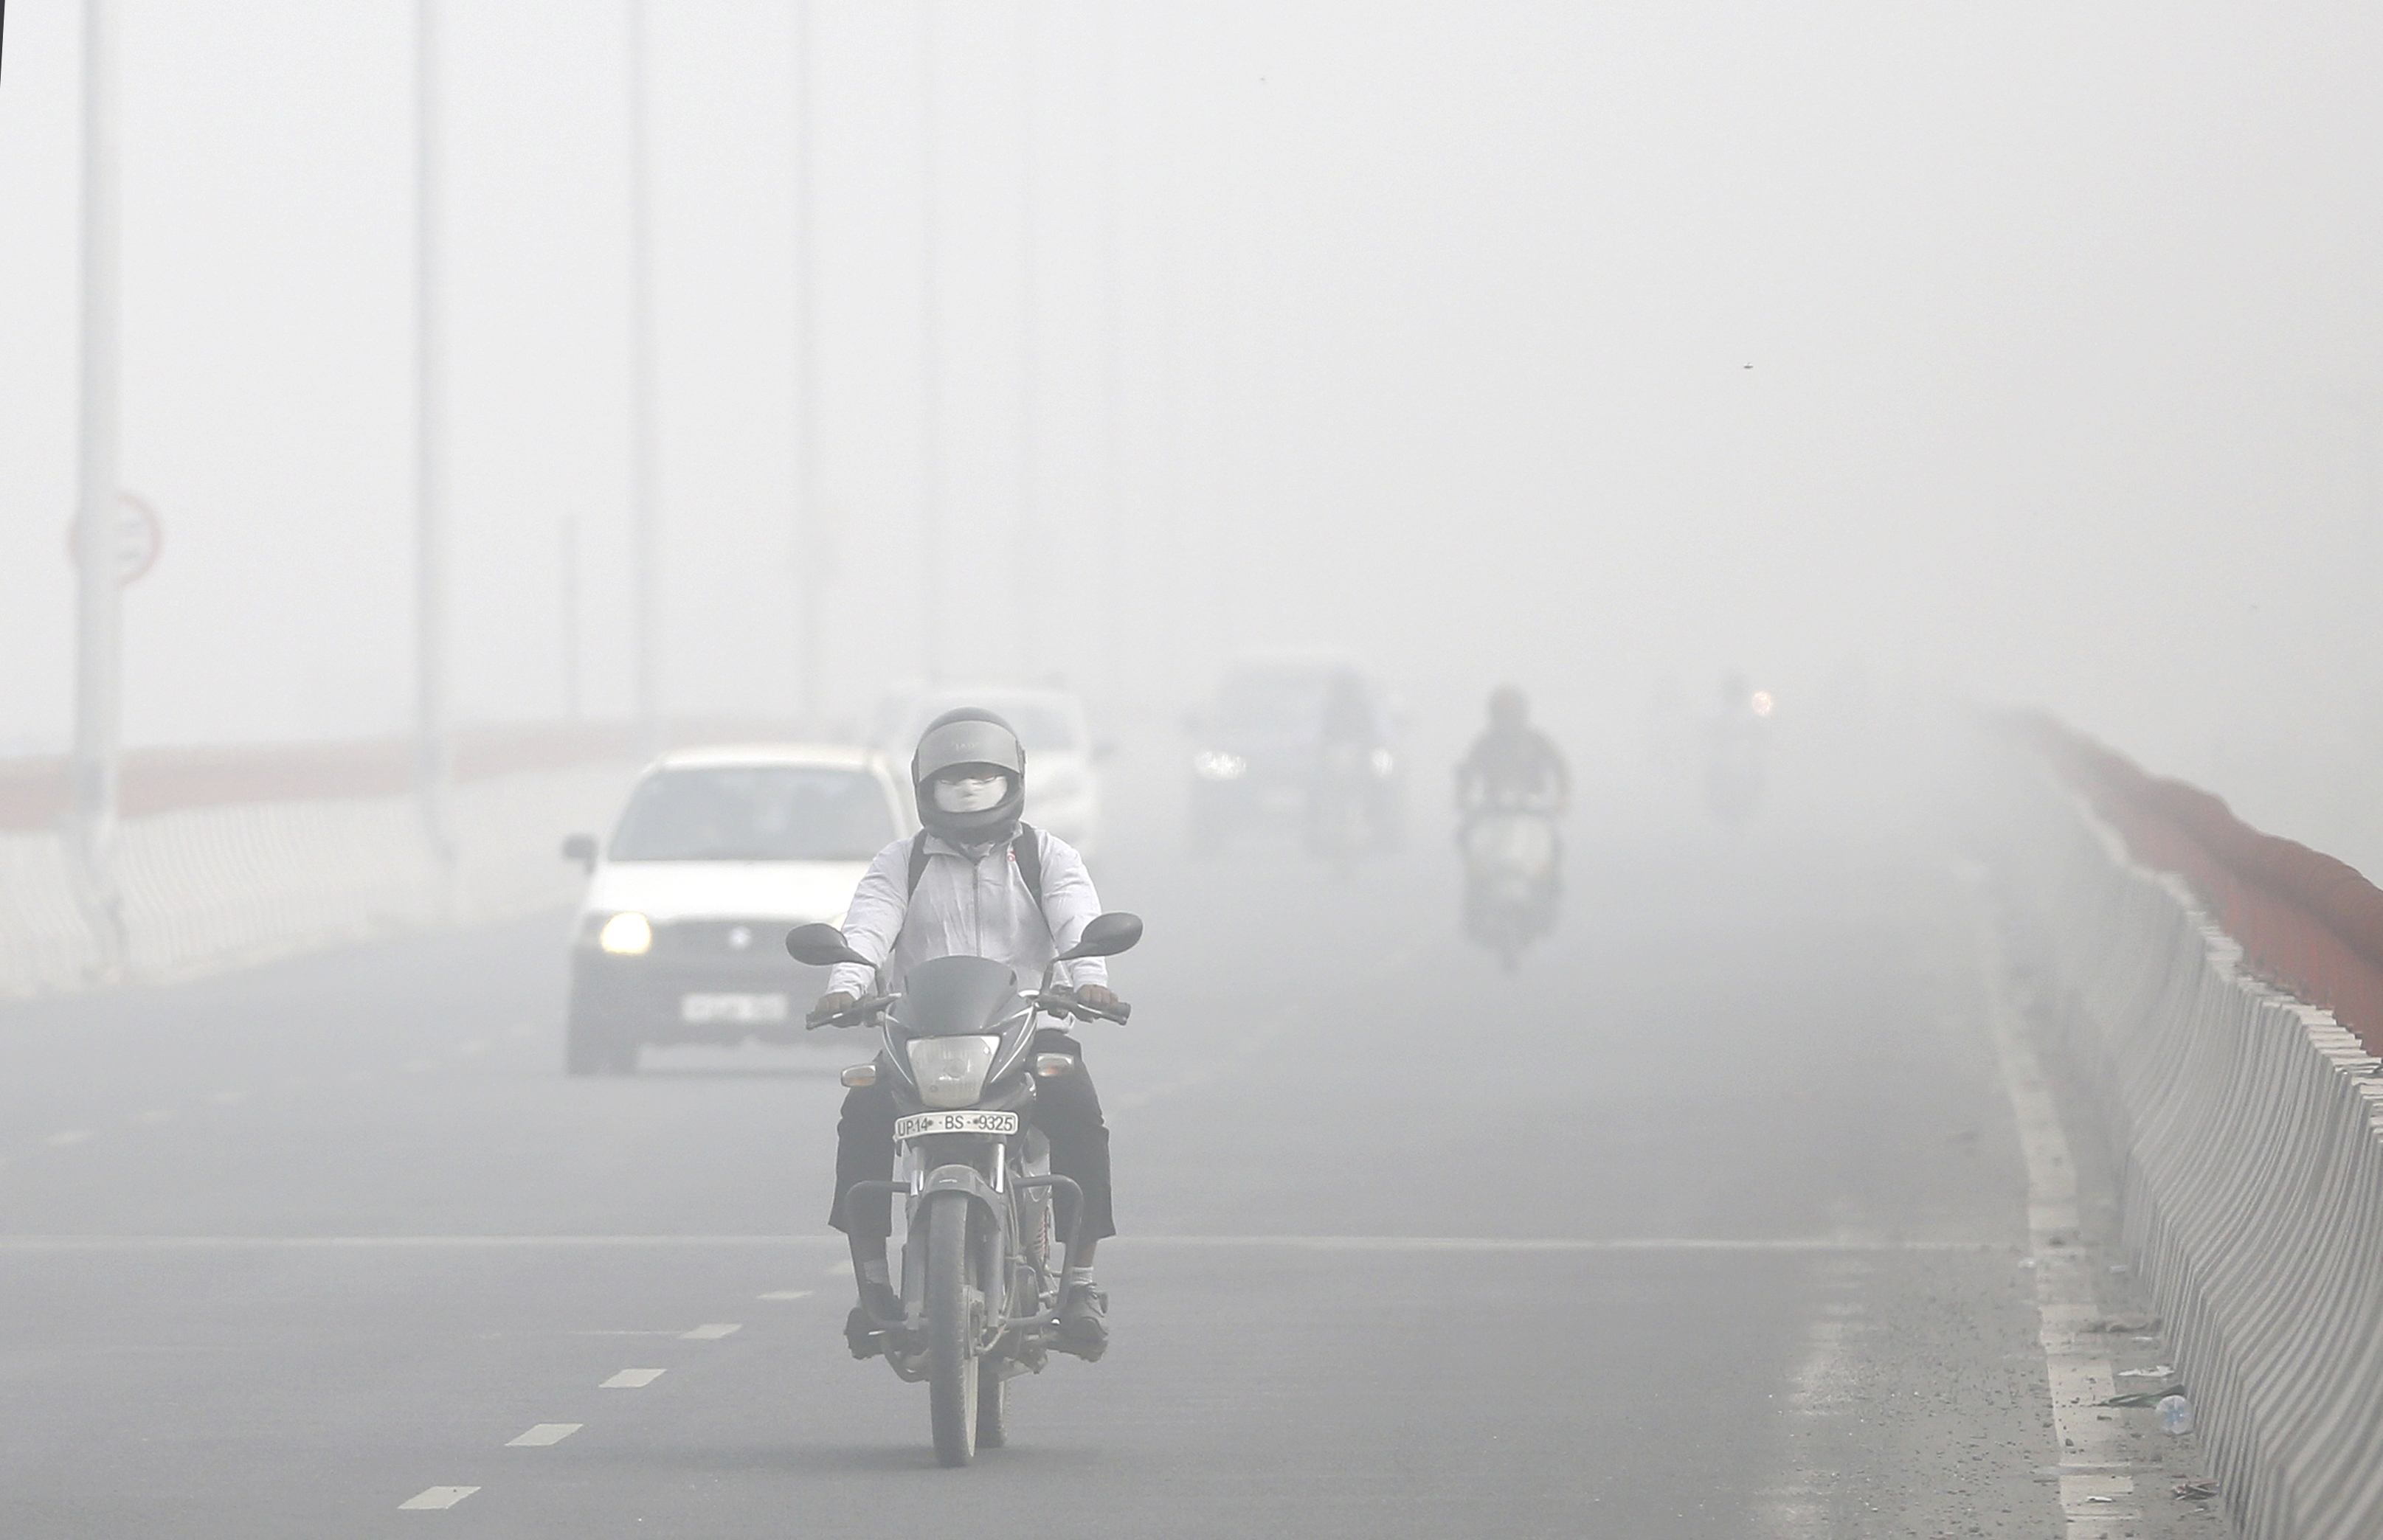 Motorists drive surrounded by smog, in New Delhi, India, Nov. 8, 2017.